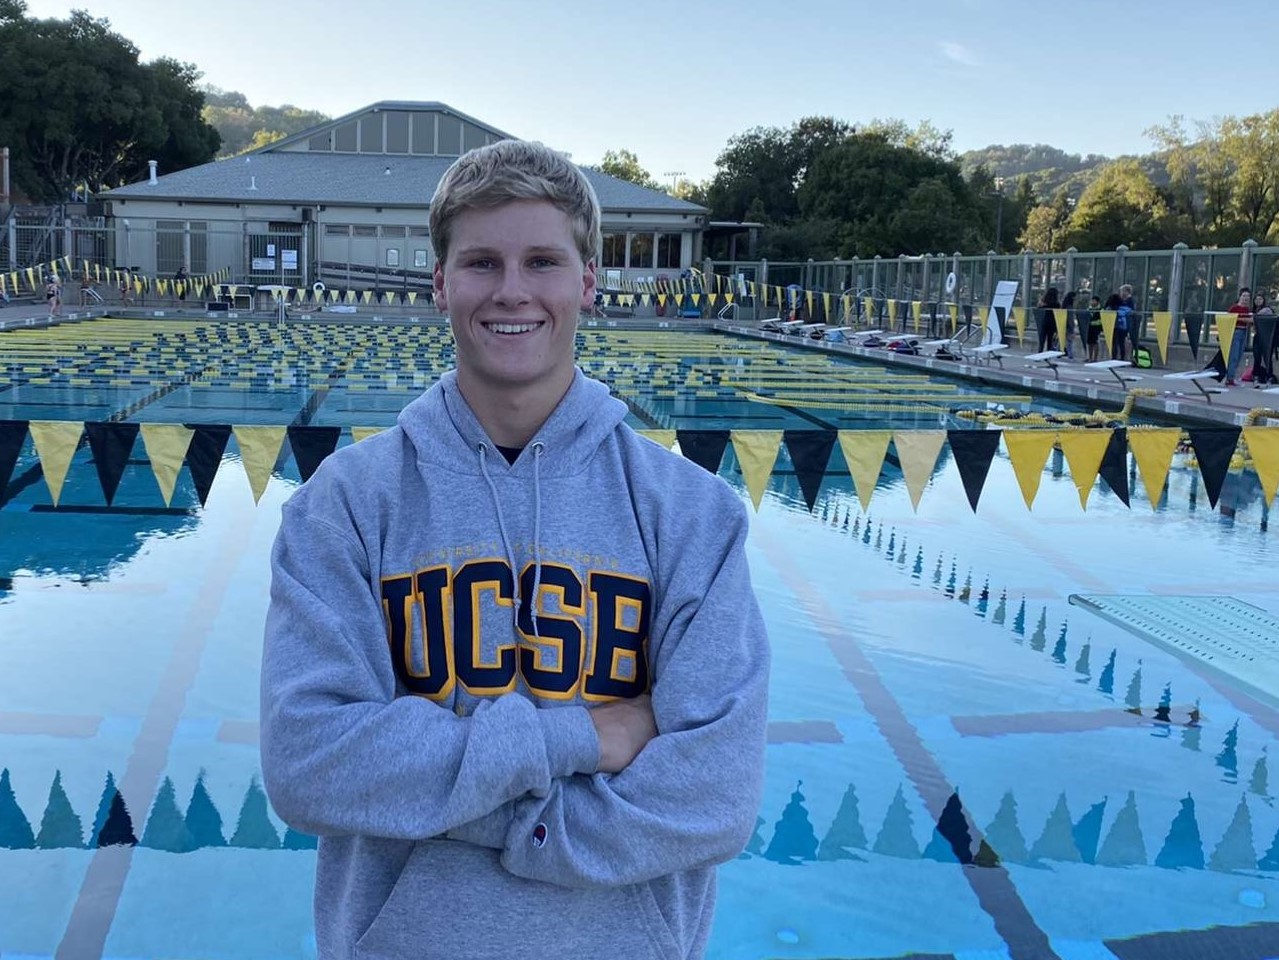 Ucsb Winter 2020.Breaststroker Corban Mcintosh Makes Verbal Commitment To Ucsb